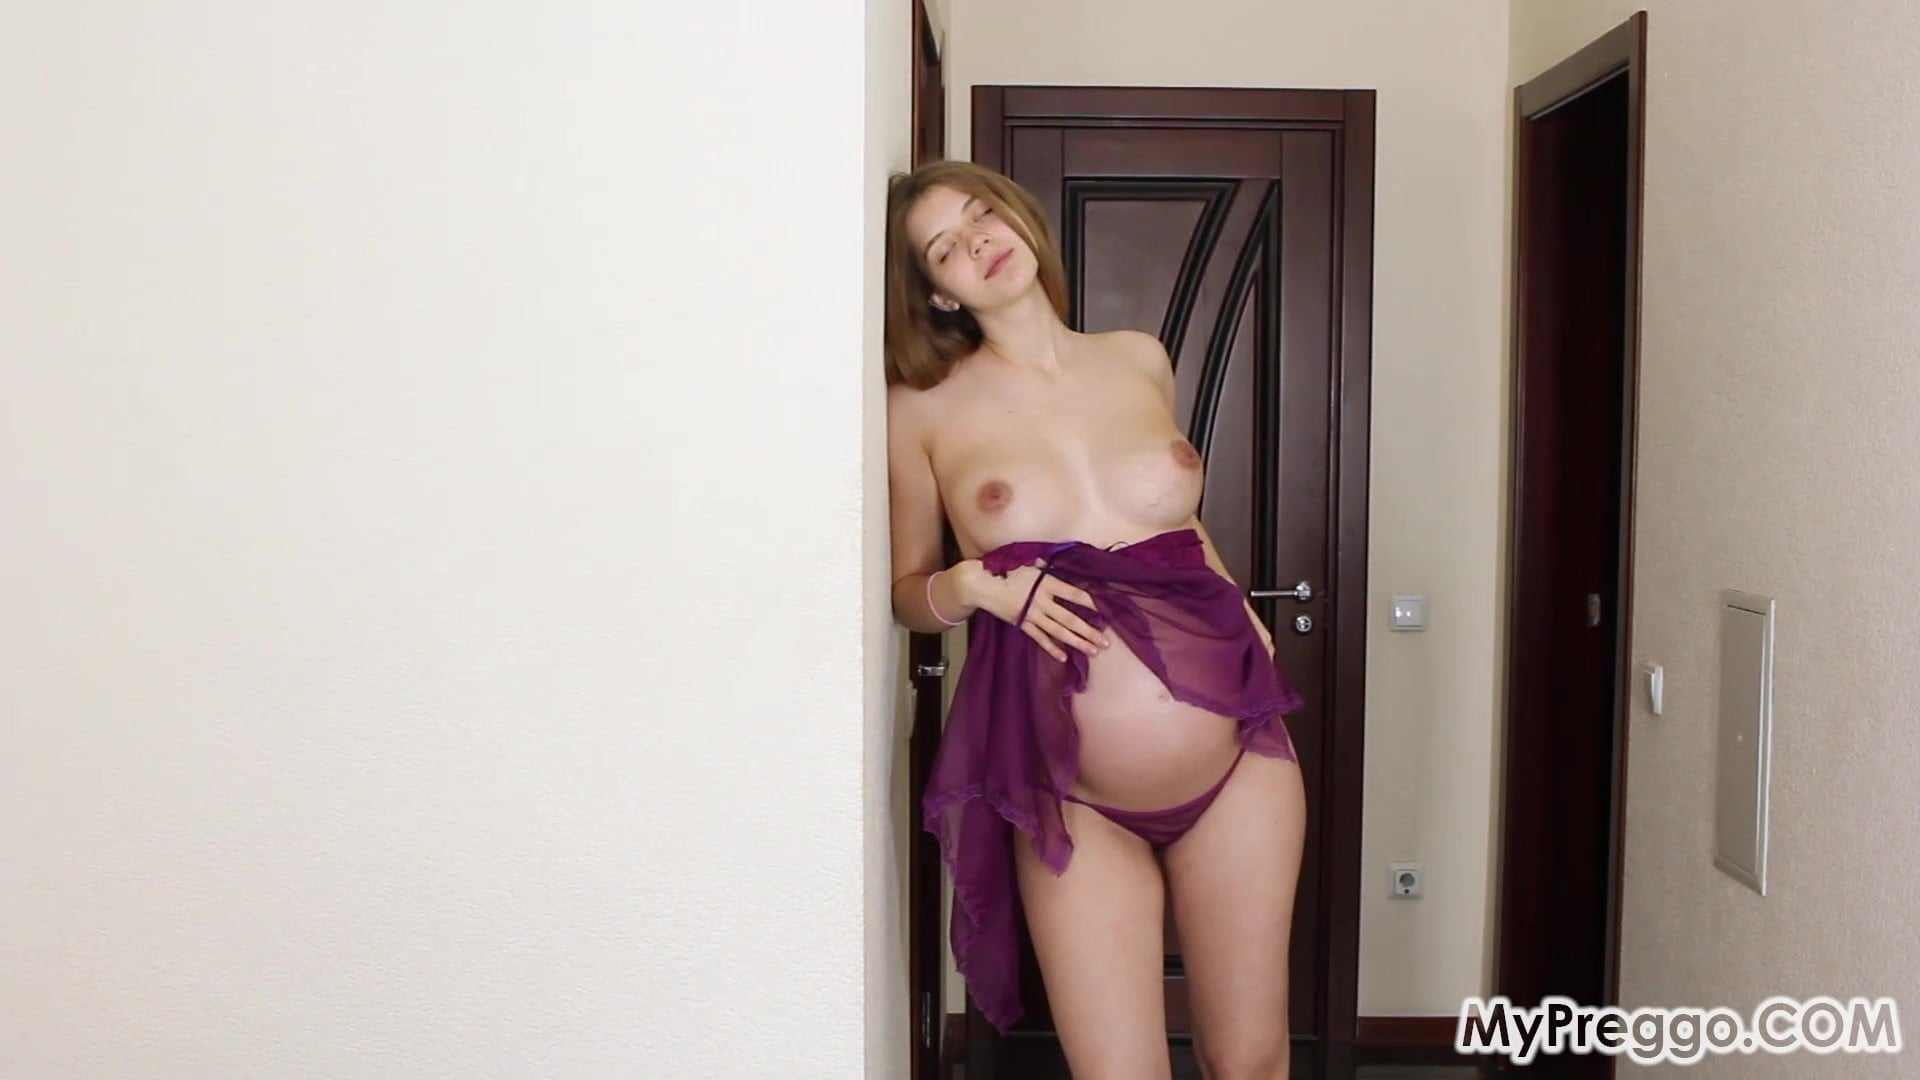 Energists – Canella Pregnant Teen in Horny Lingerie